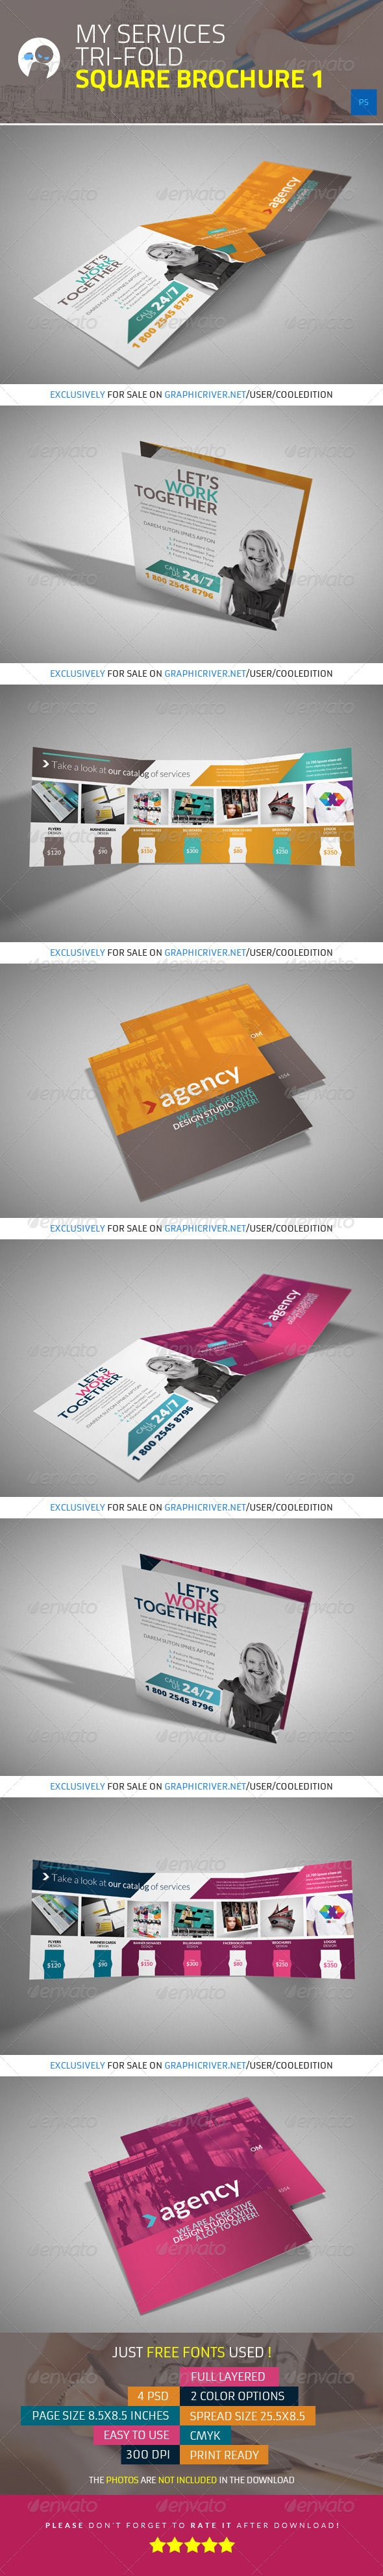 My Services - Tri-fold Square Brochure 1 - Brochures Print Templates @Treefrog Marketing